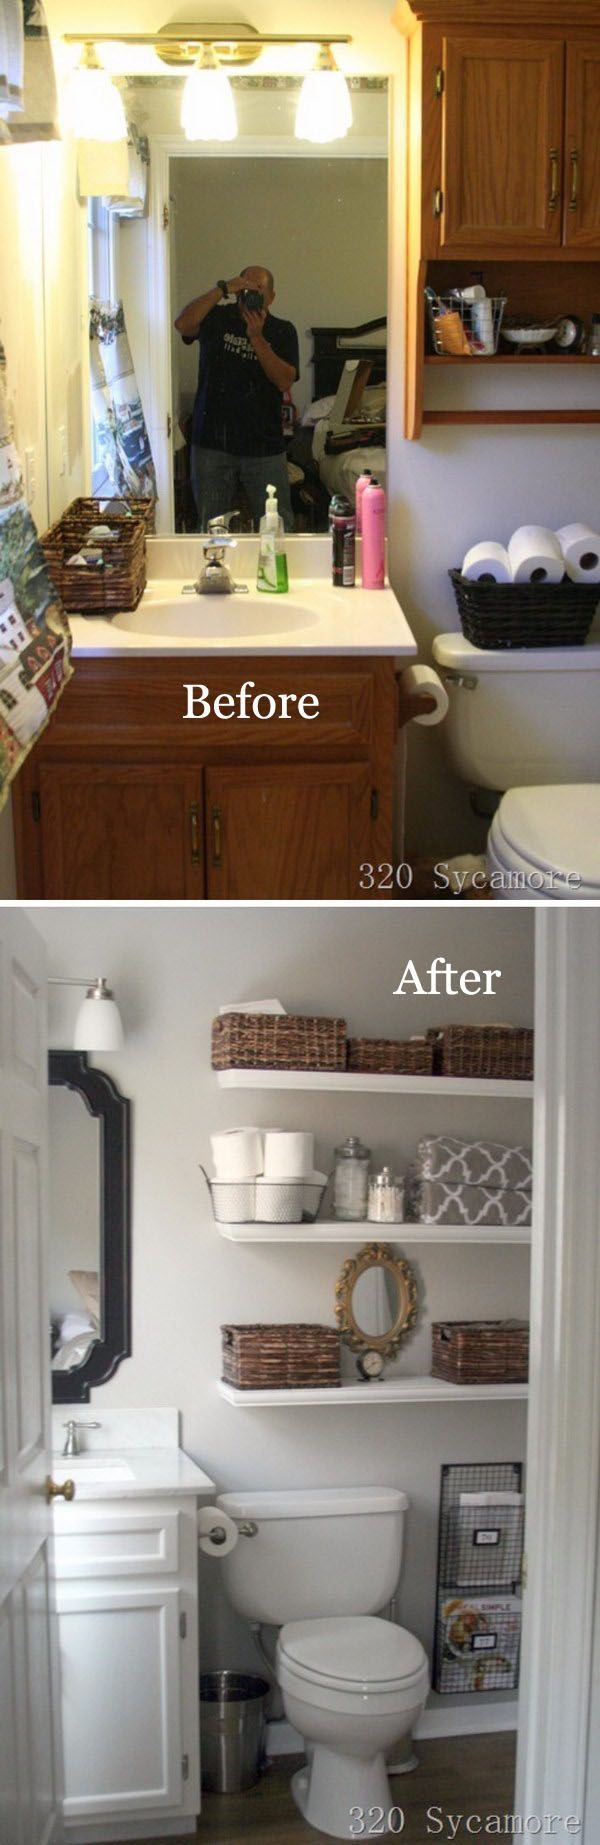 Before and After  20  Awesome Bathroom MakeoversBest 25  Small bathrooms decor ideas on Pinterest   Small bathroom  . Diy Small Bathroom Decor Pinterest. Home Design Ideas